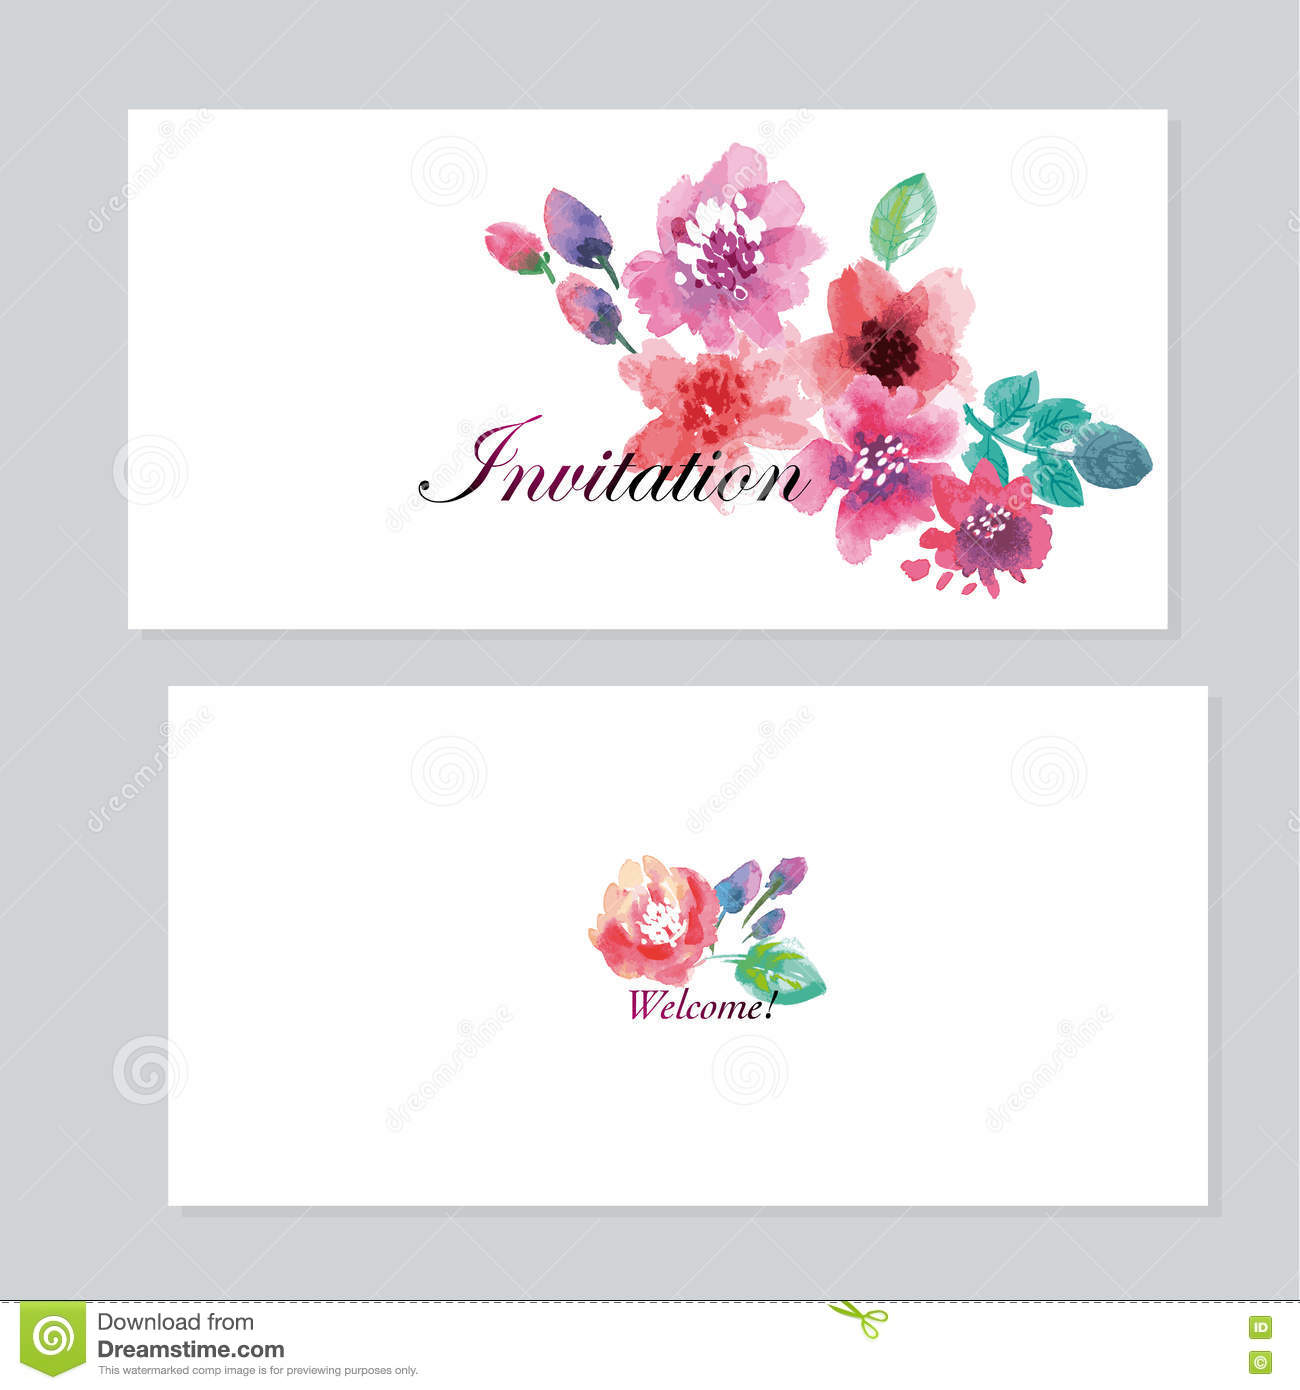 Watercolor Floral Invitation Template For Wedding. Stock ...